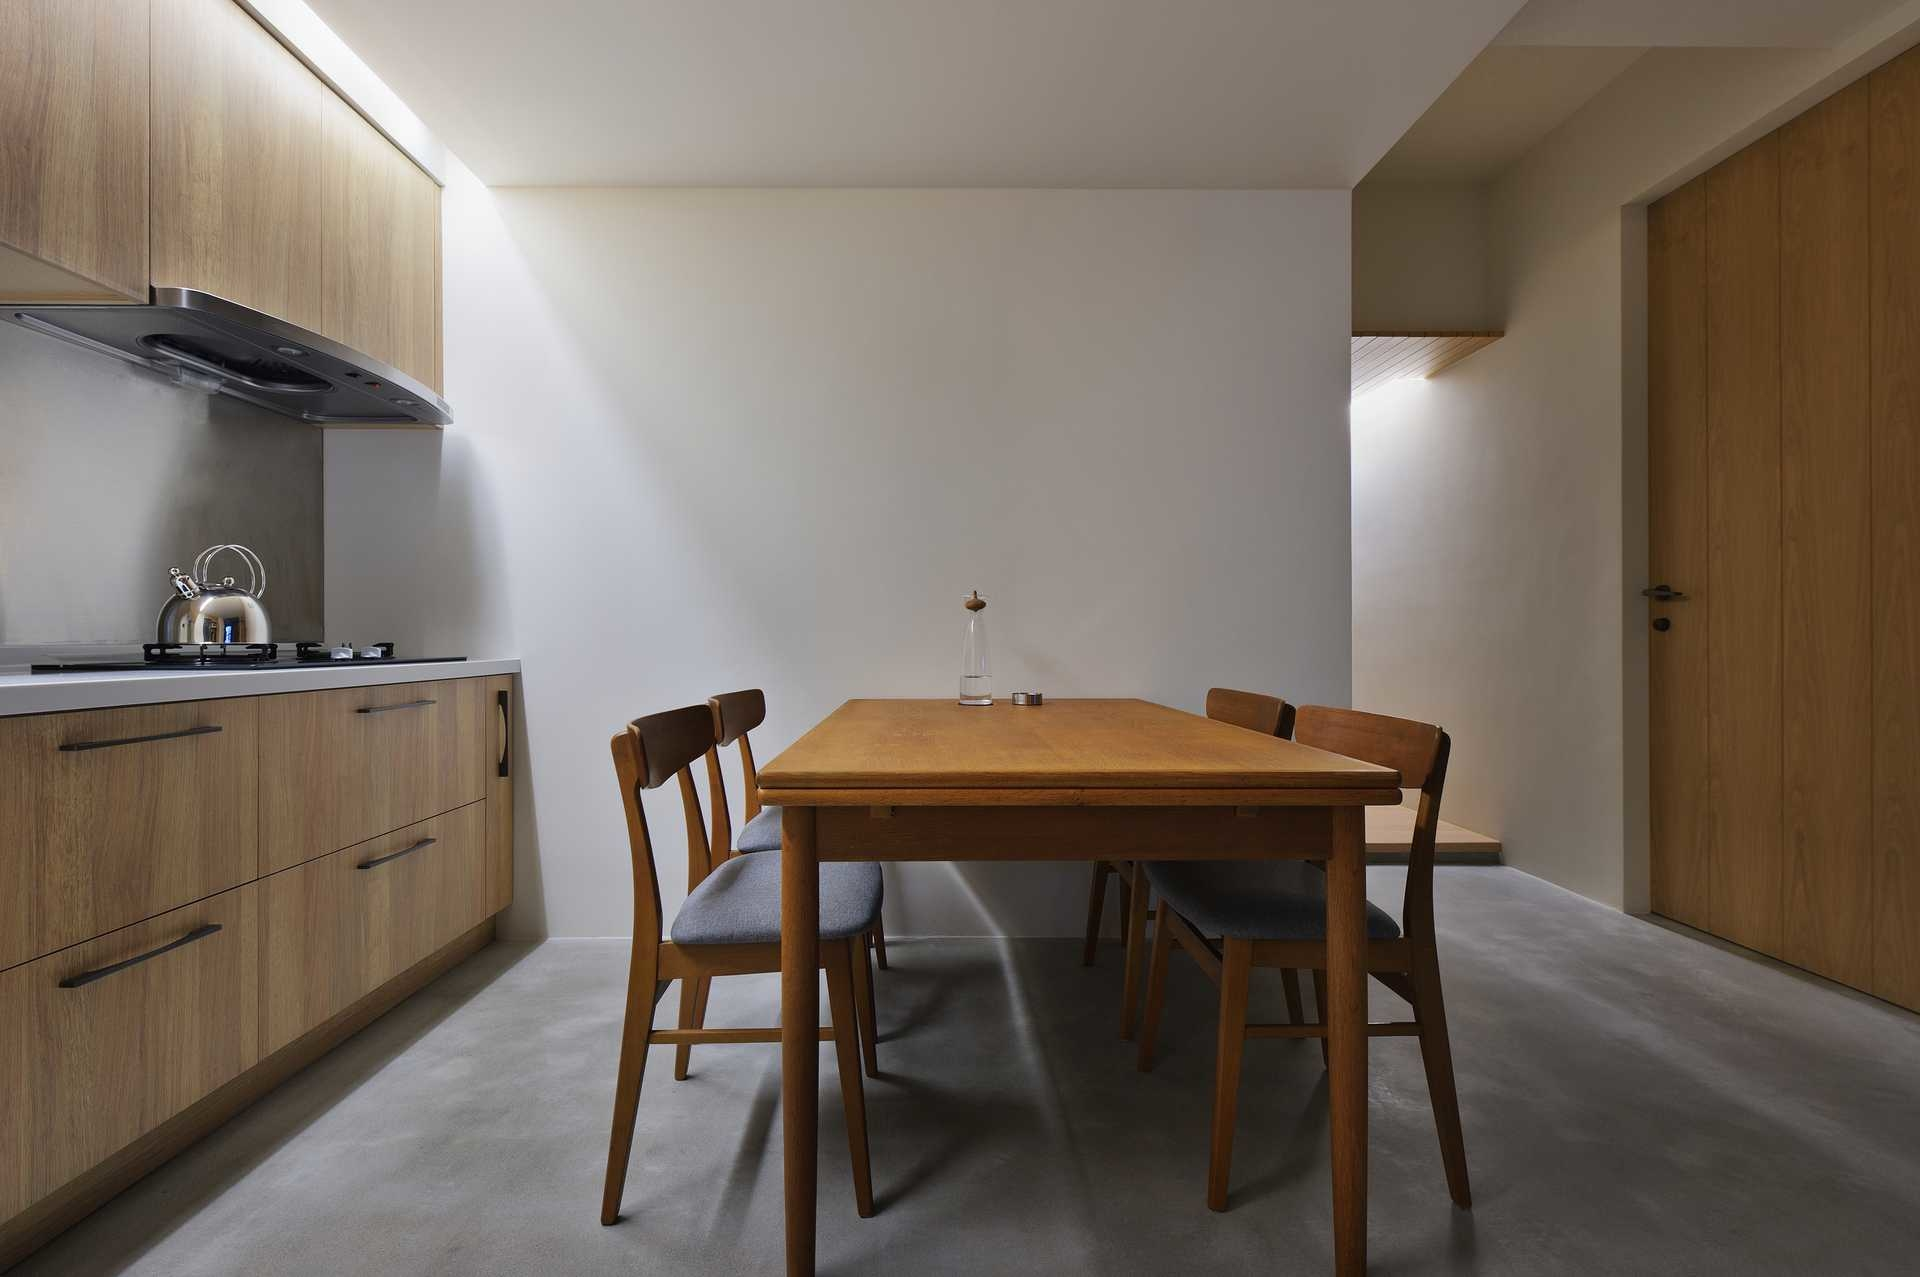 Dining room,Others